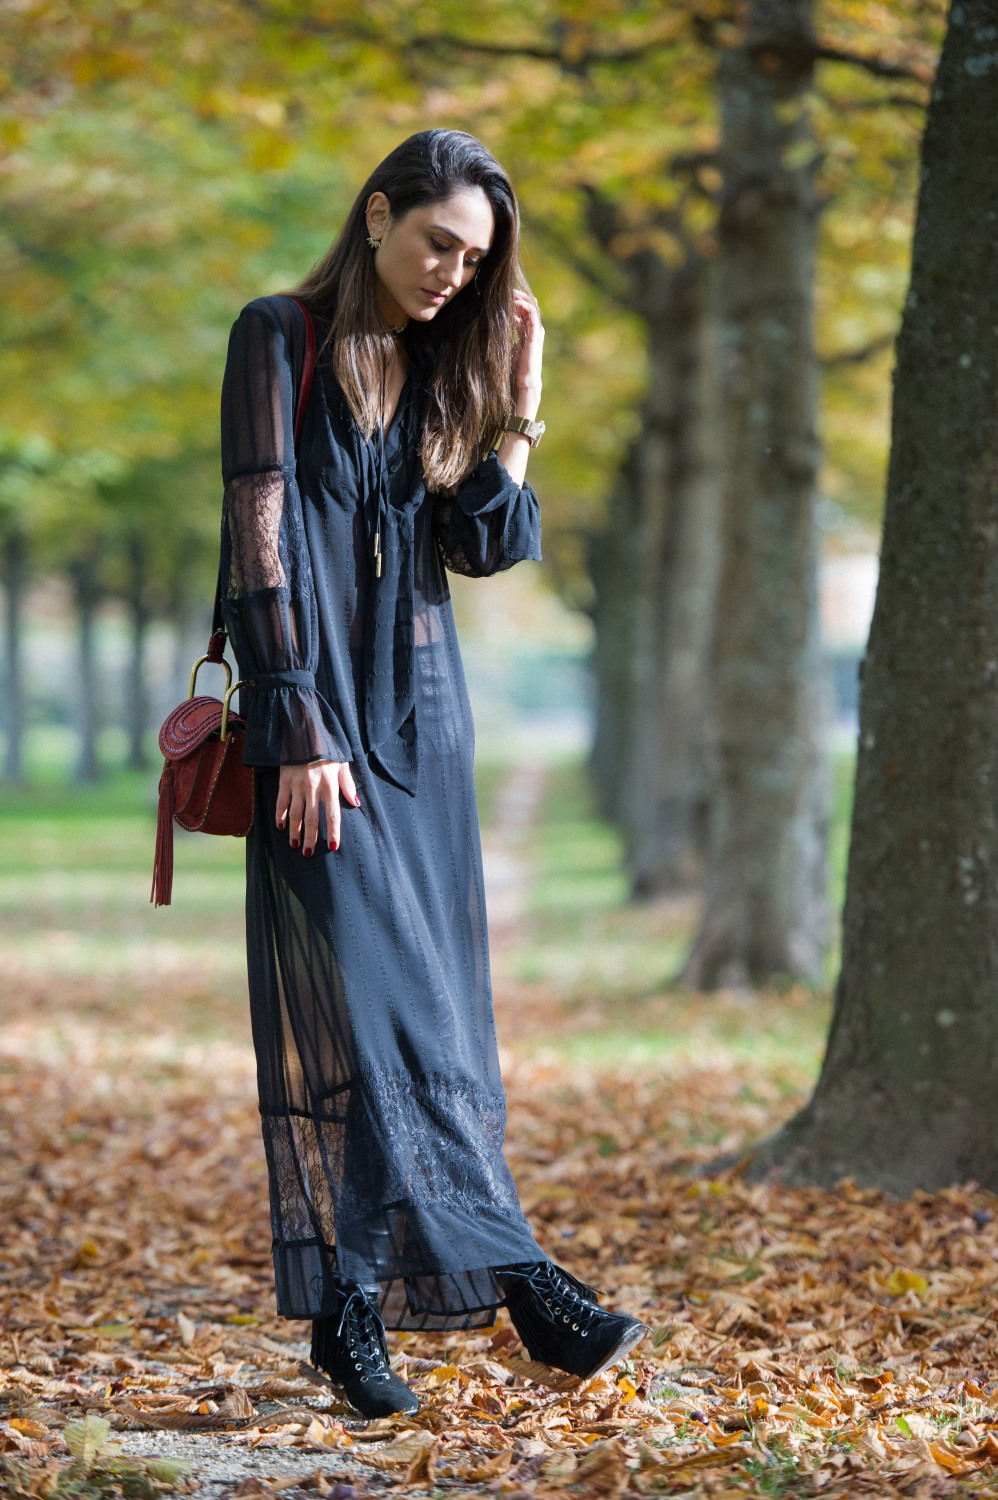 The Boho Outfits File: What Is Bohemian Style And How Do You Style ...